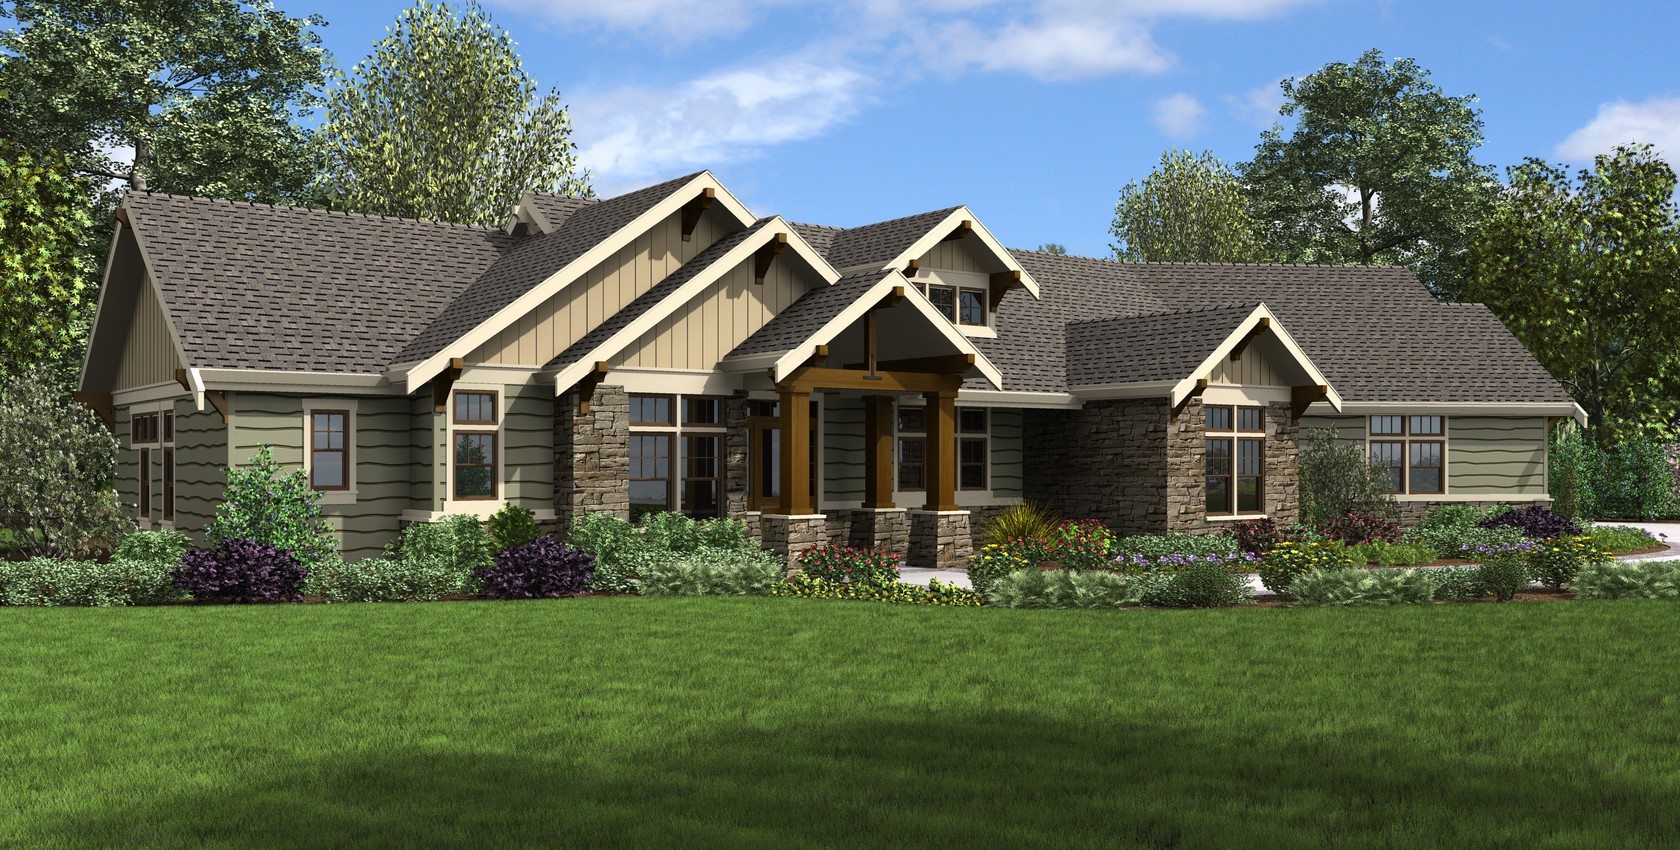 Image for Arapahoe-Popular Amenities such as Vaulted Spaces, Great Rear Porch-8513